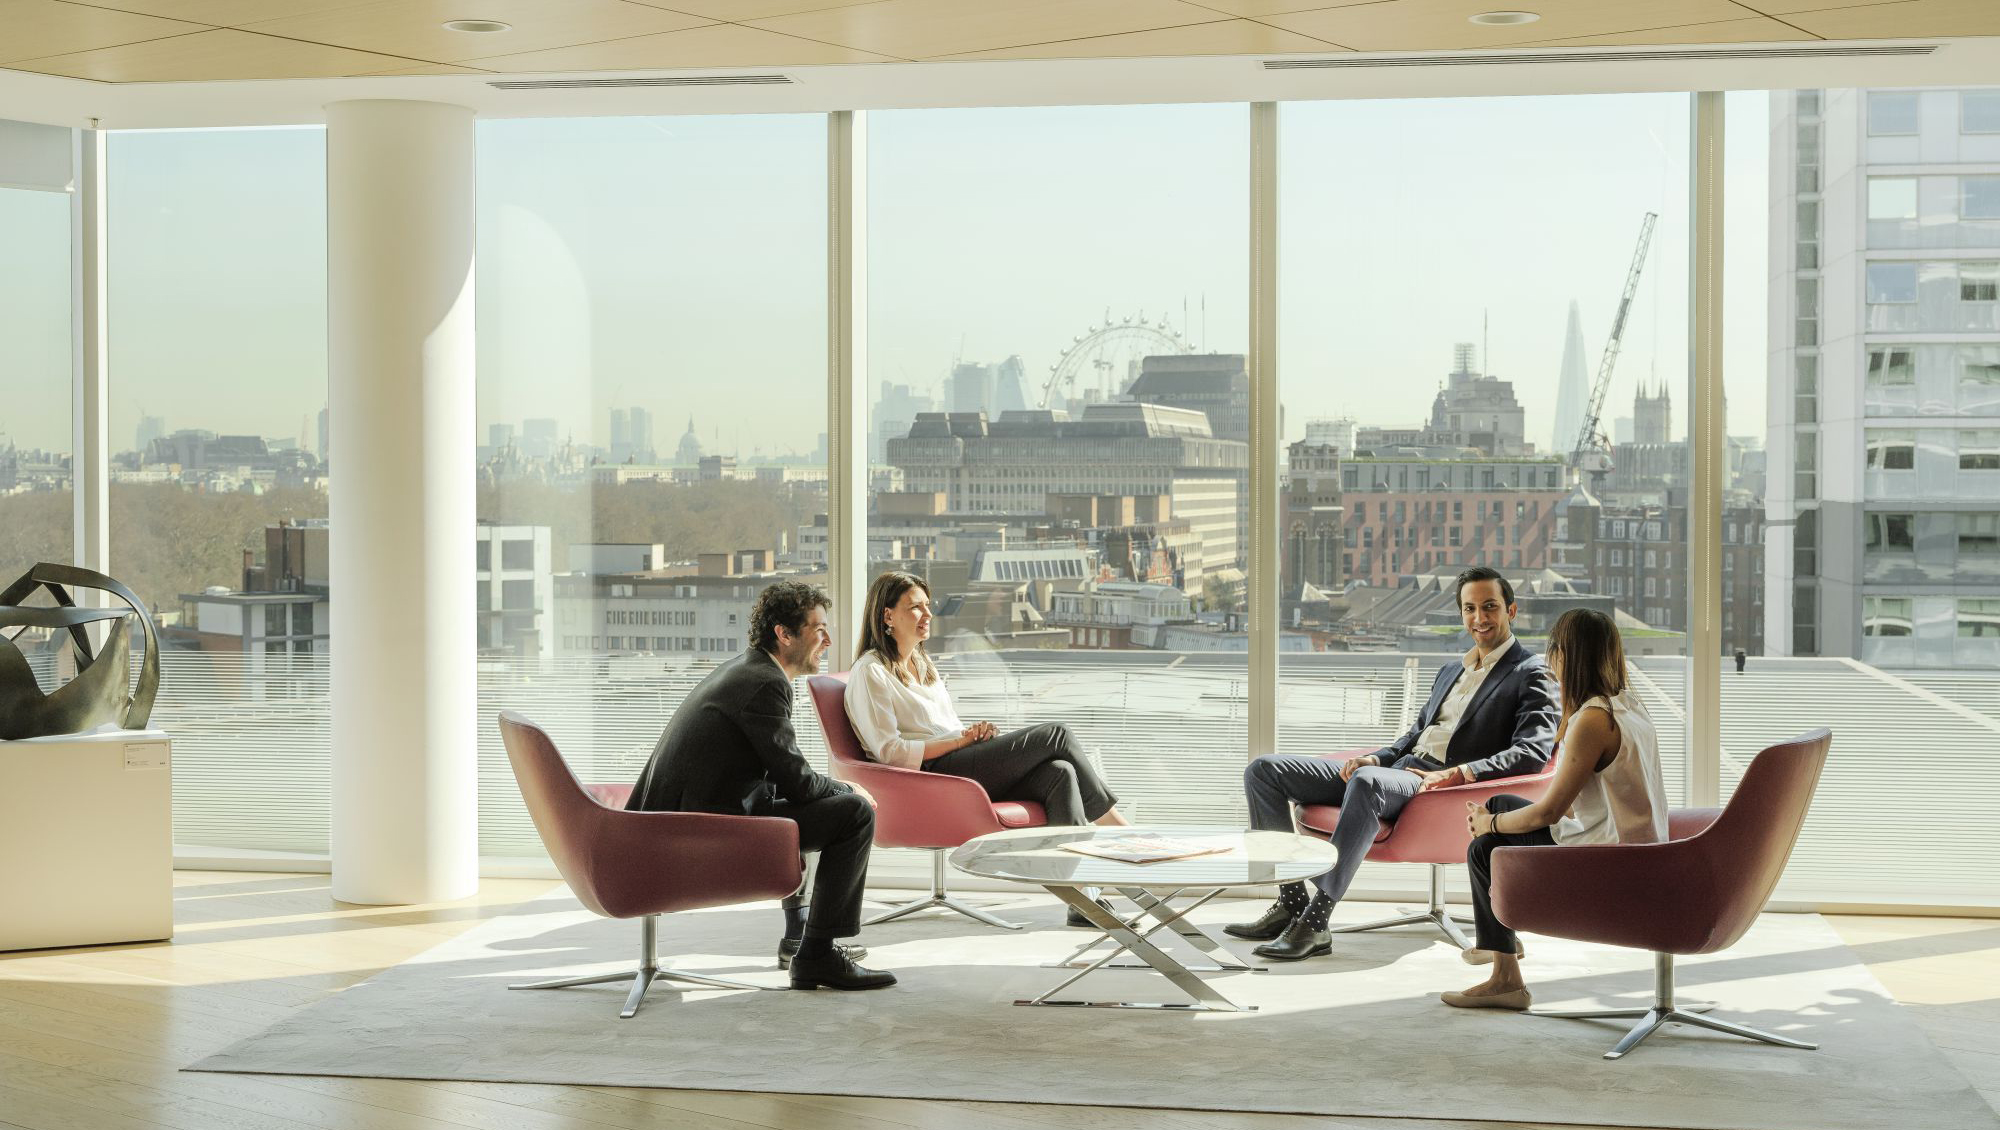 Tishman Speyer completes sale of major London office property